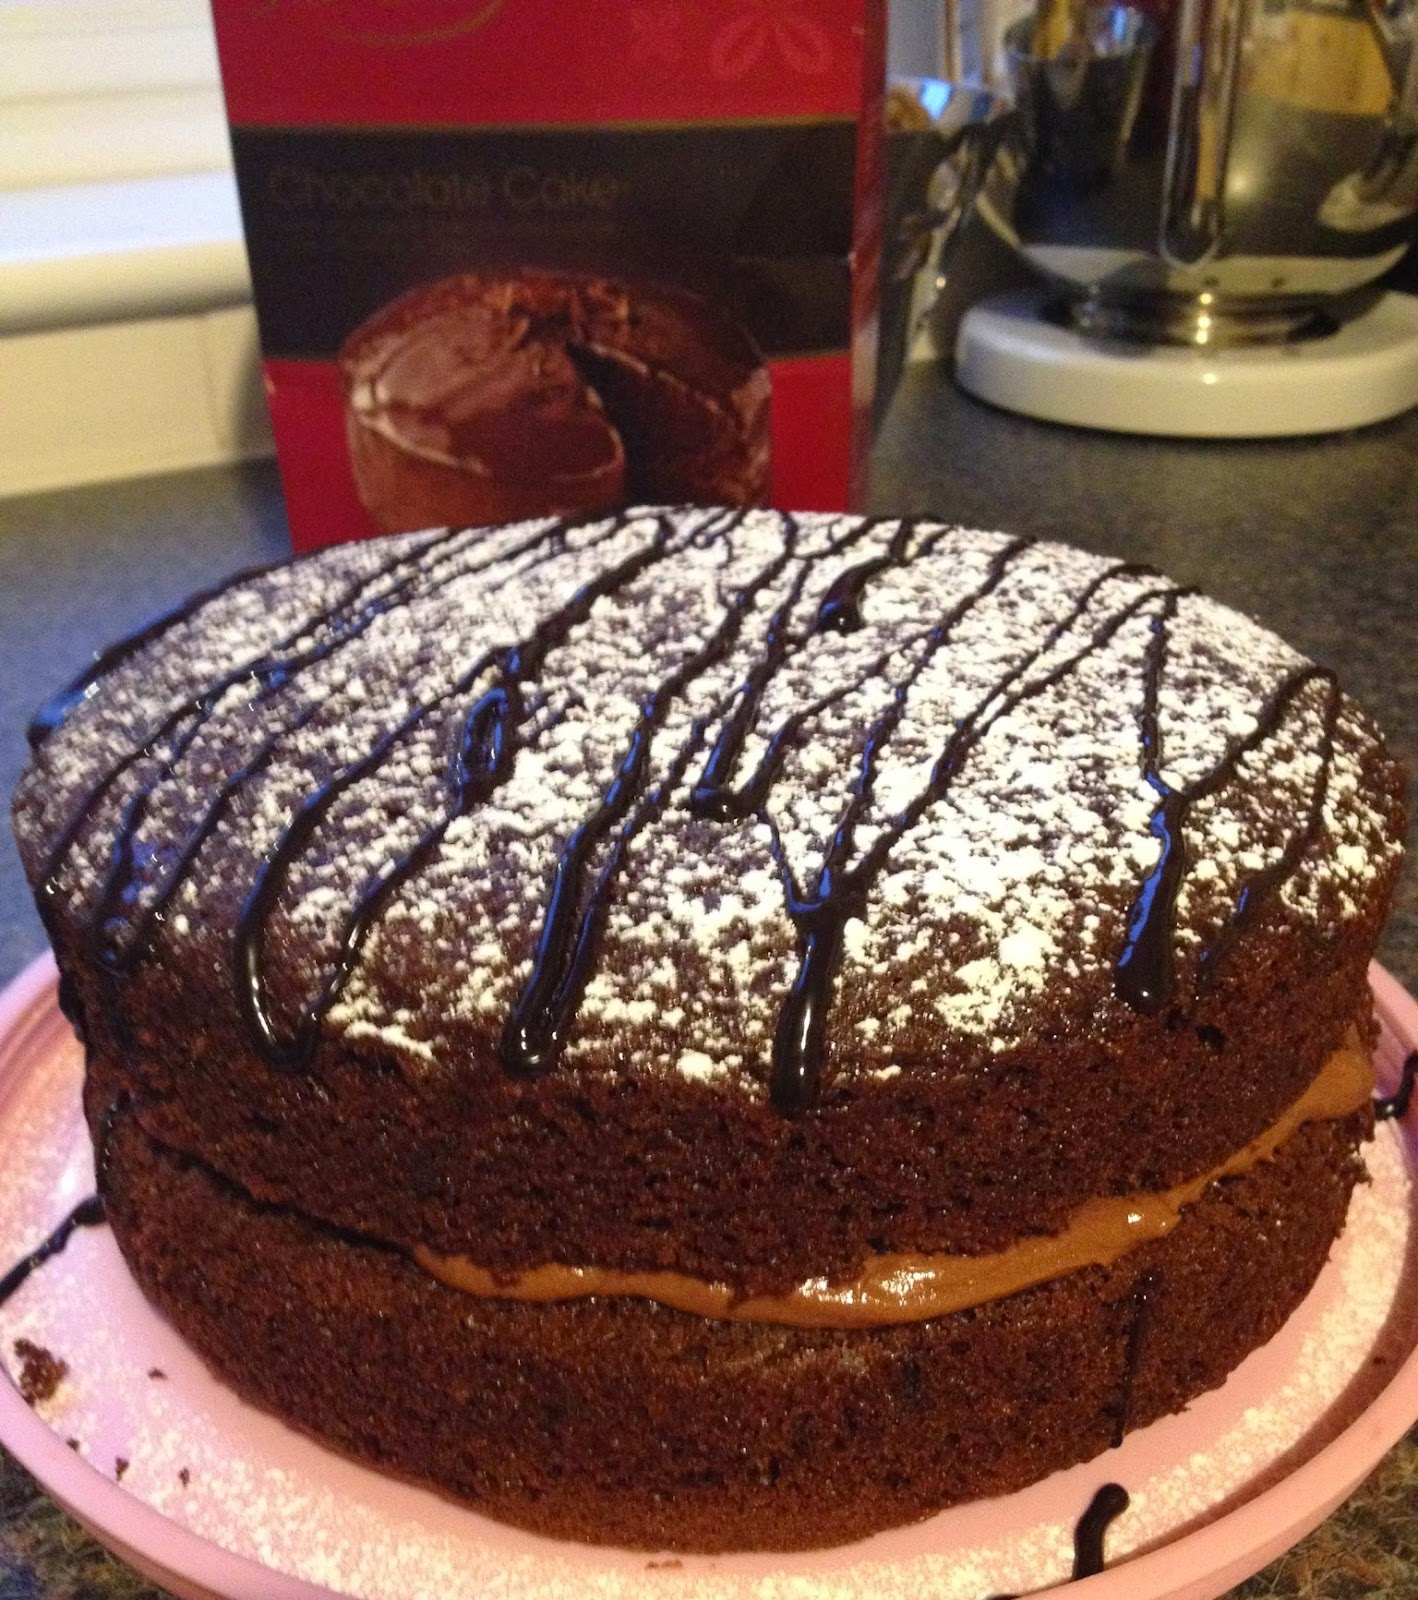 Chocolate Cake for Macmillan